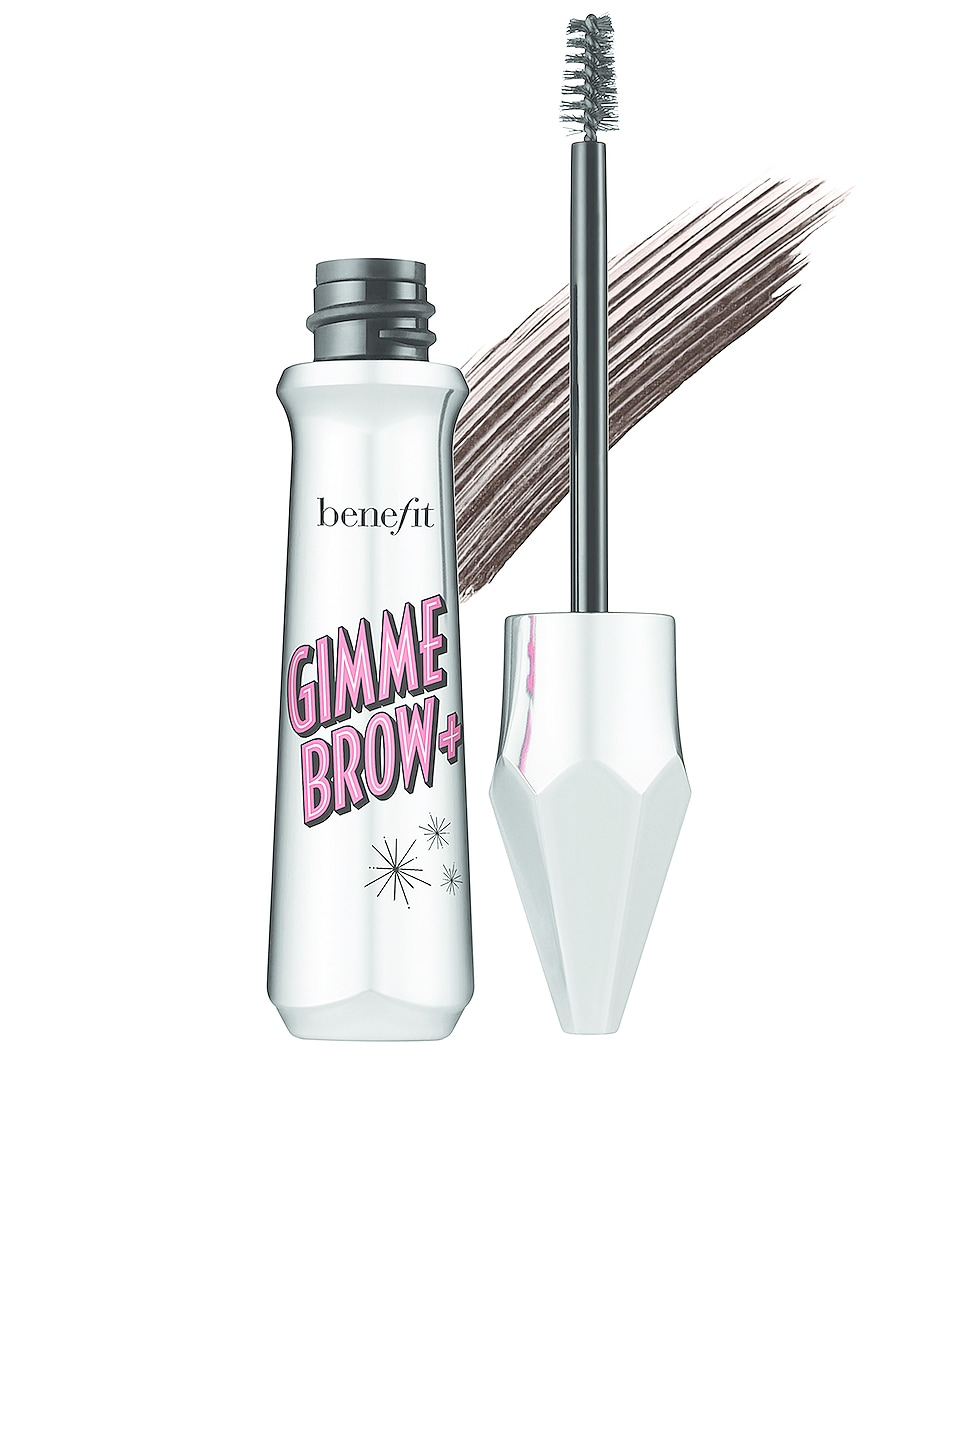 Benefit Cosmetics Gimme Brow+ Volumizing Eyebrow Gel in Shade 06